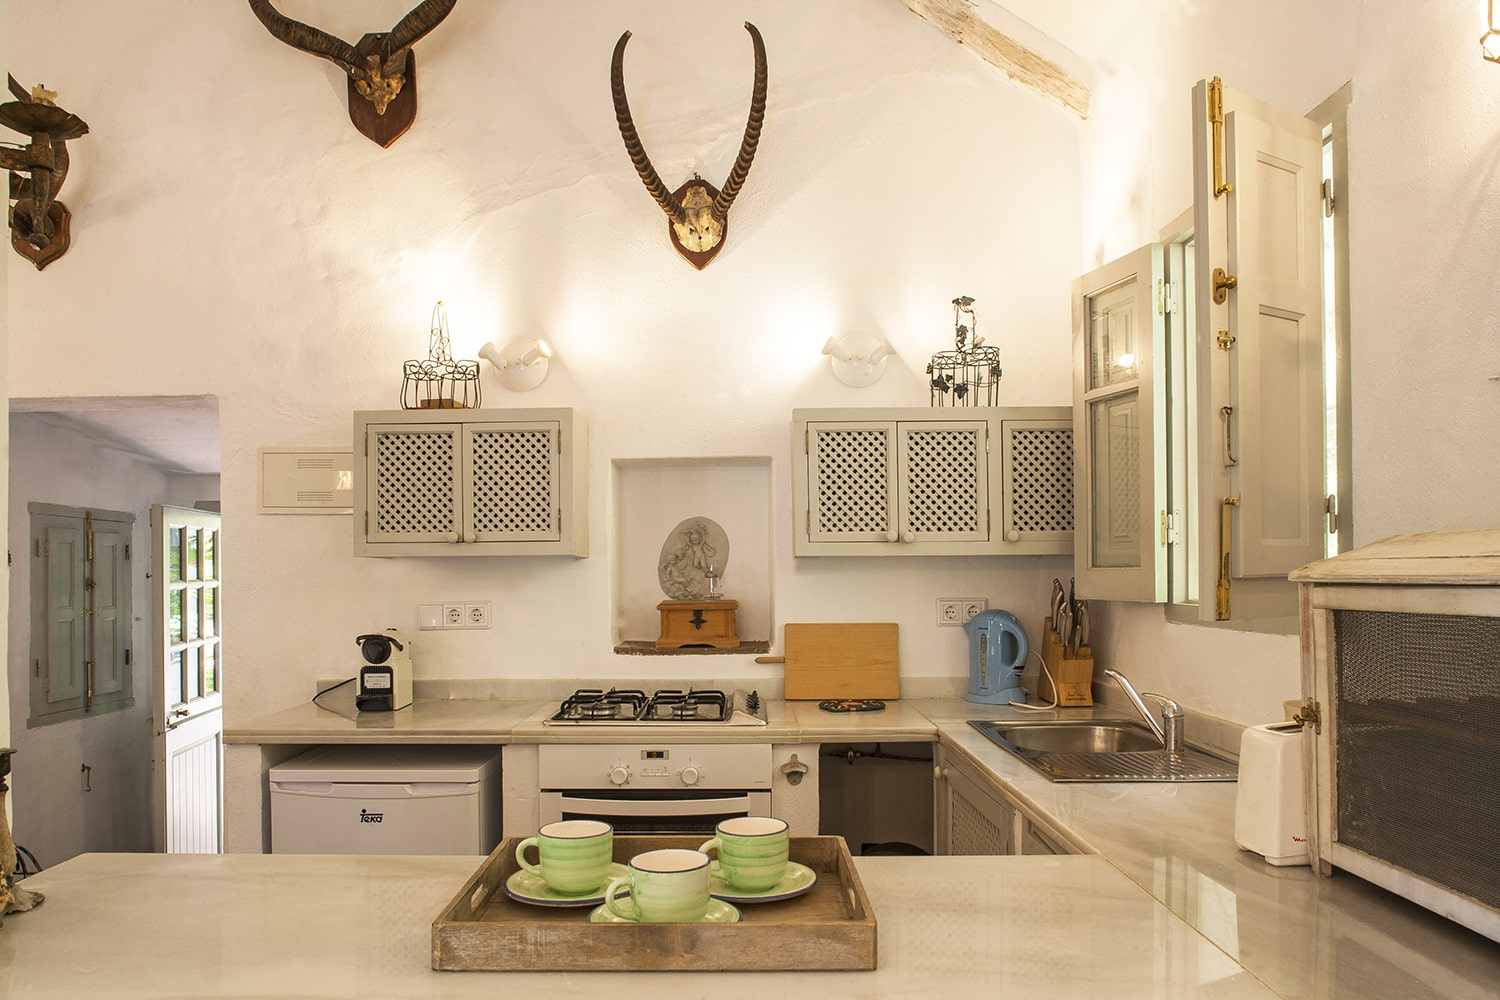 kitchen villa andalucia